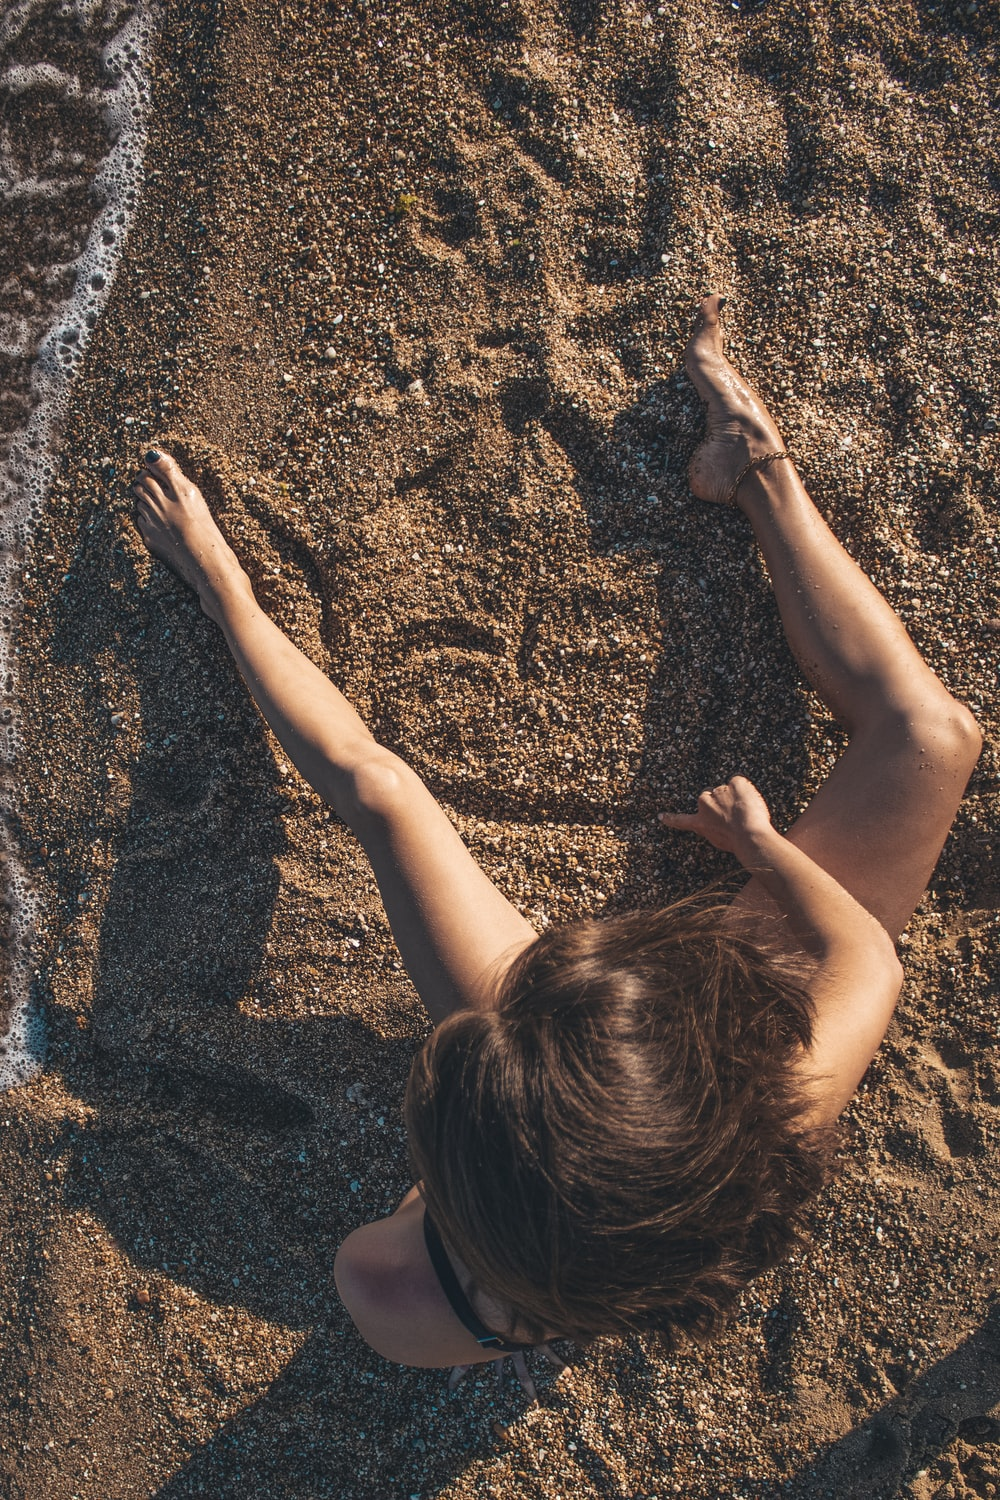 girl in black shirt on brown sand during daytime